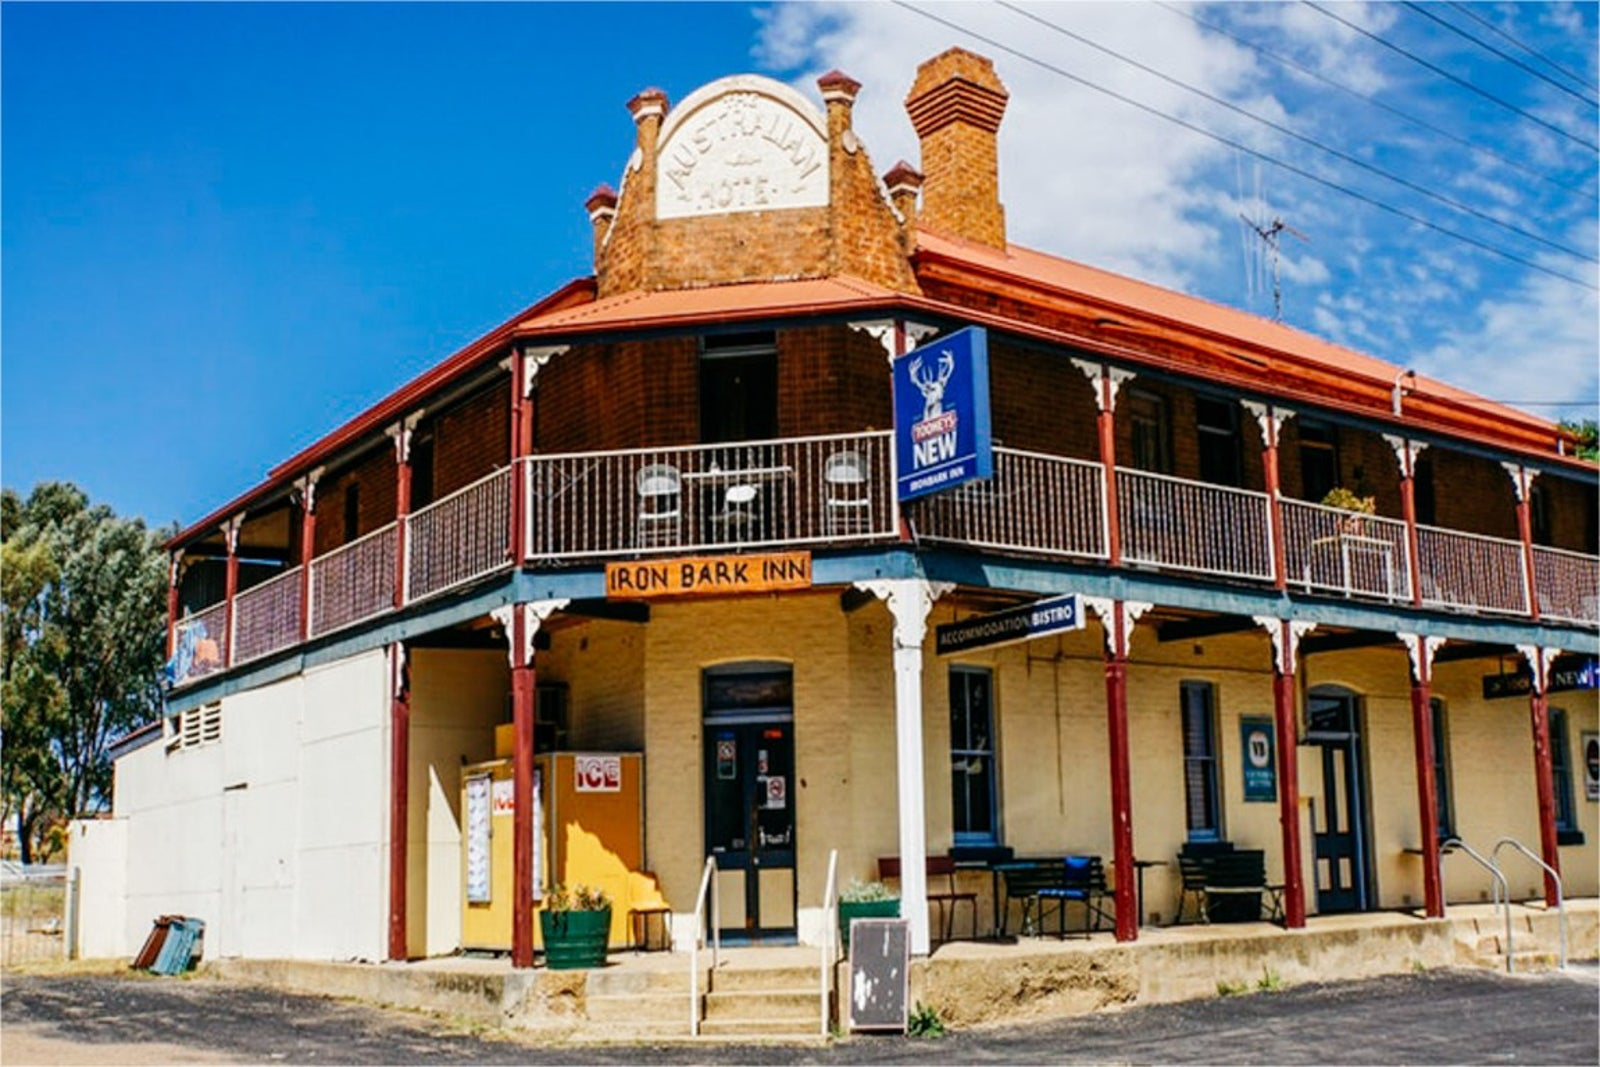 Iron Bark Pub, Central West NSW